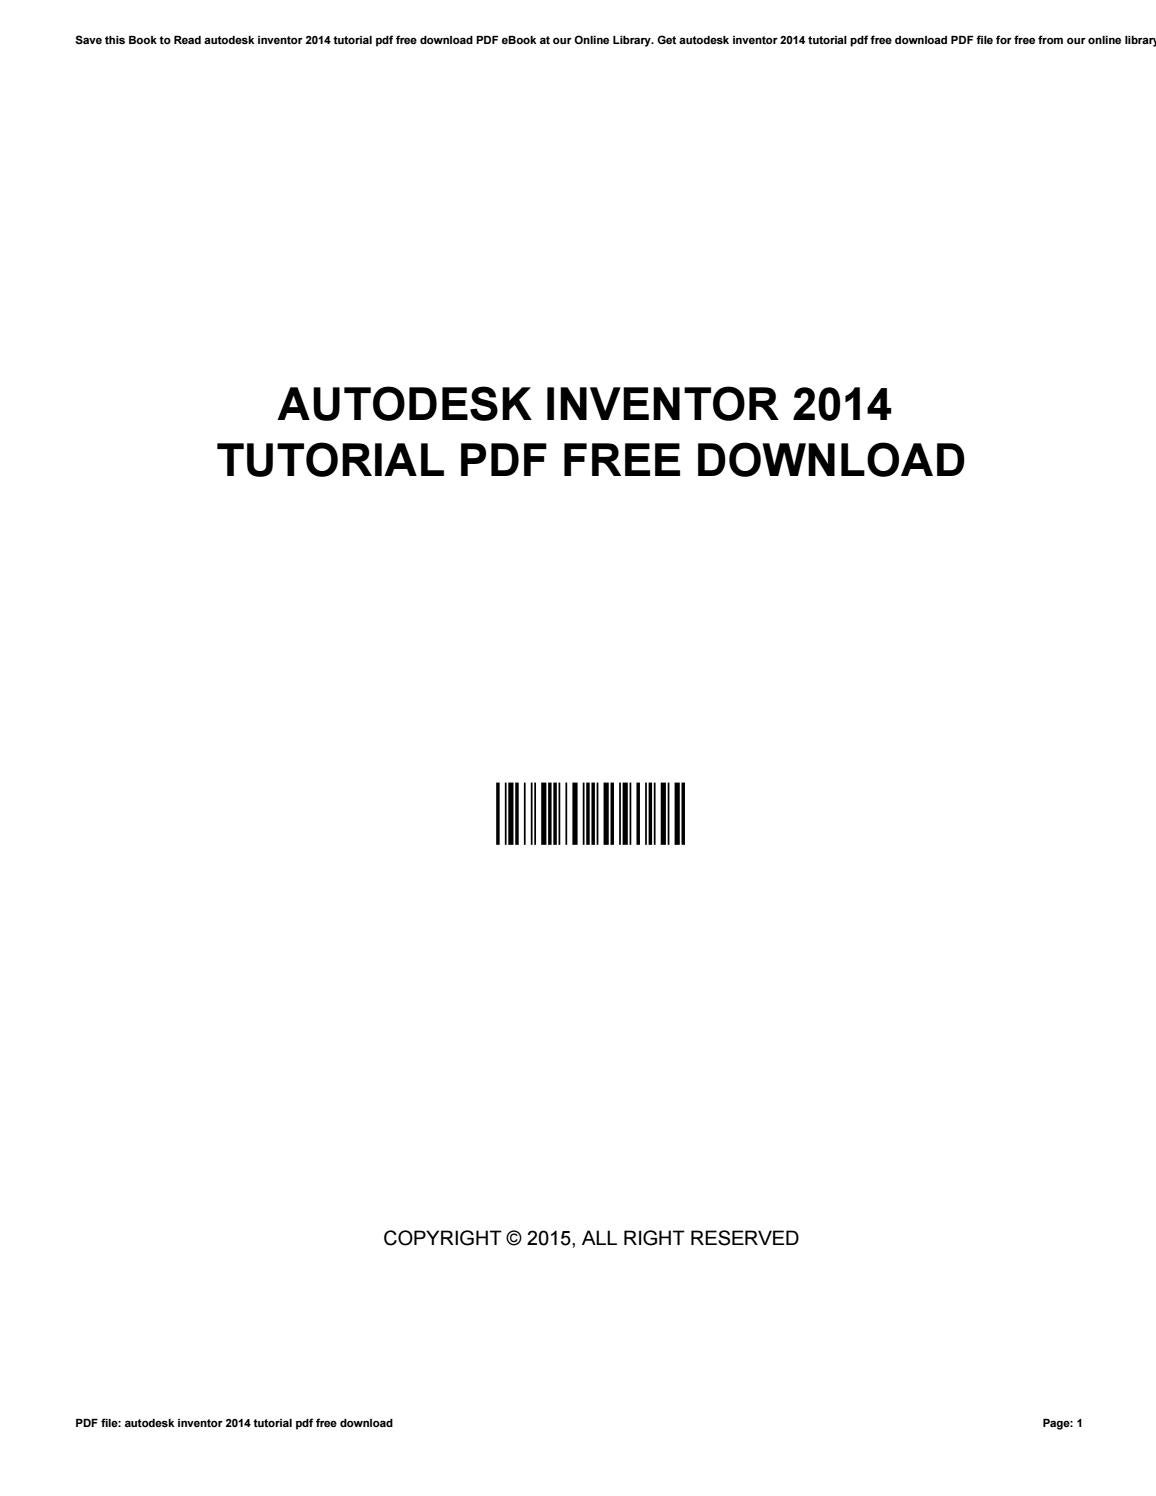 Autodesk inventor 2014 tutorial pdf free download by